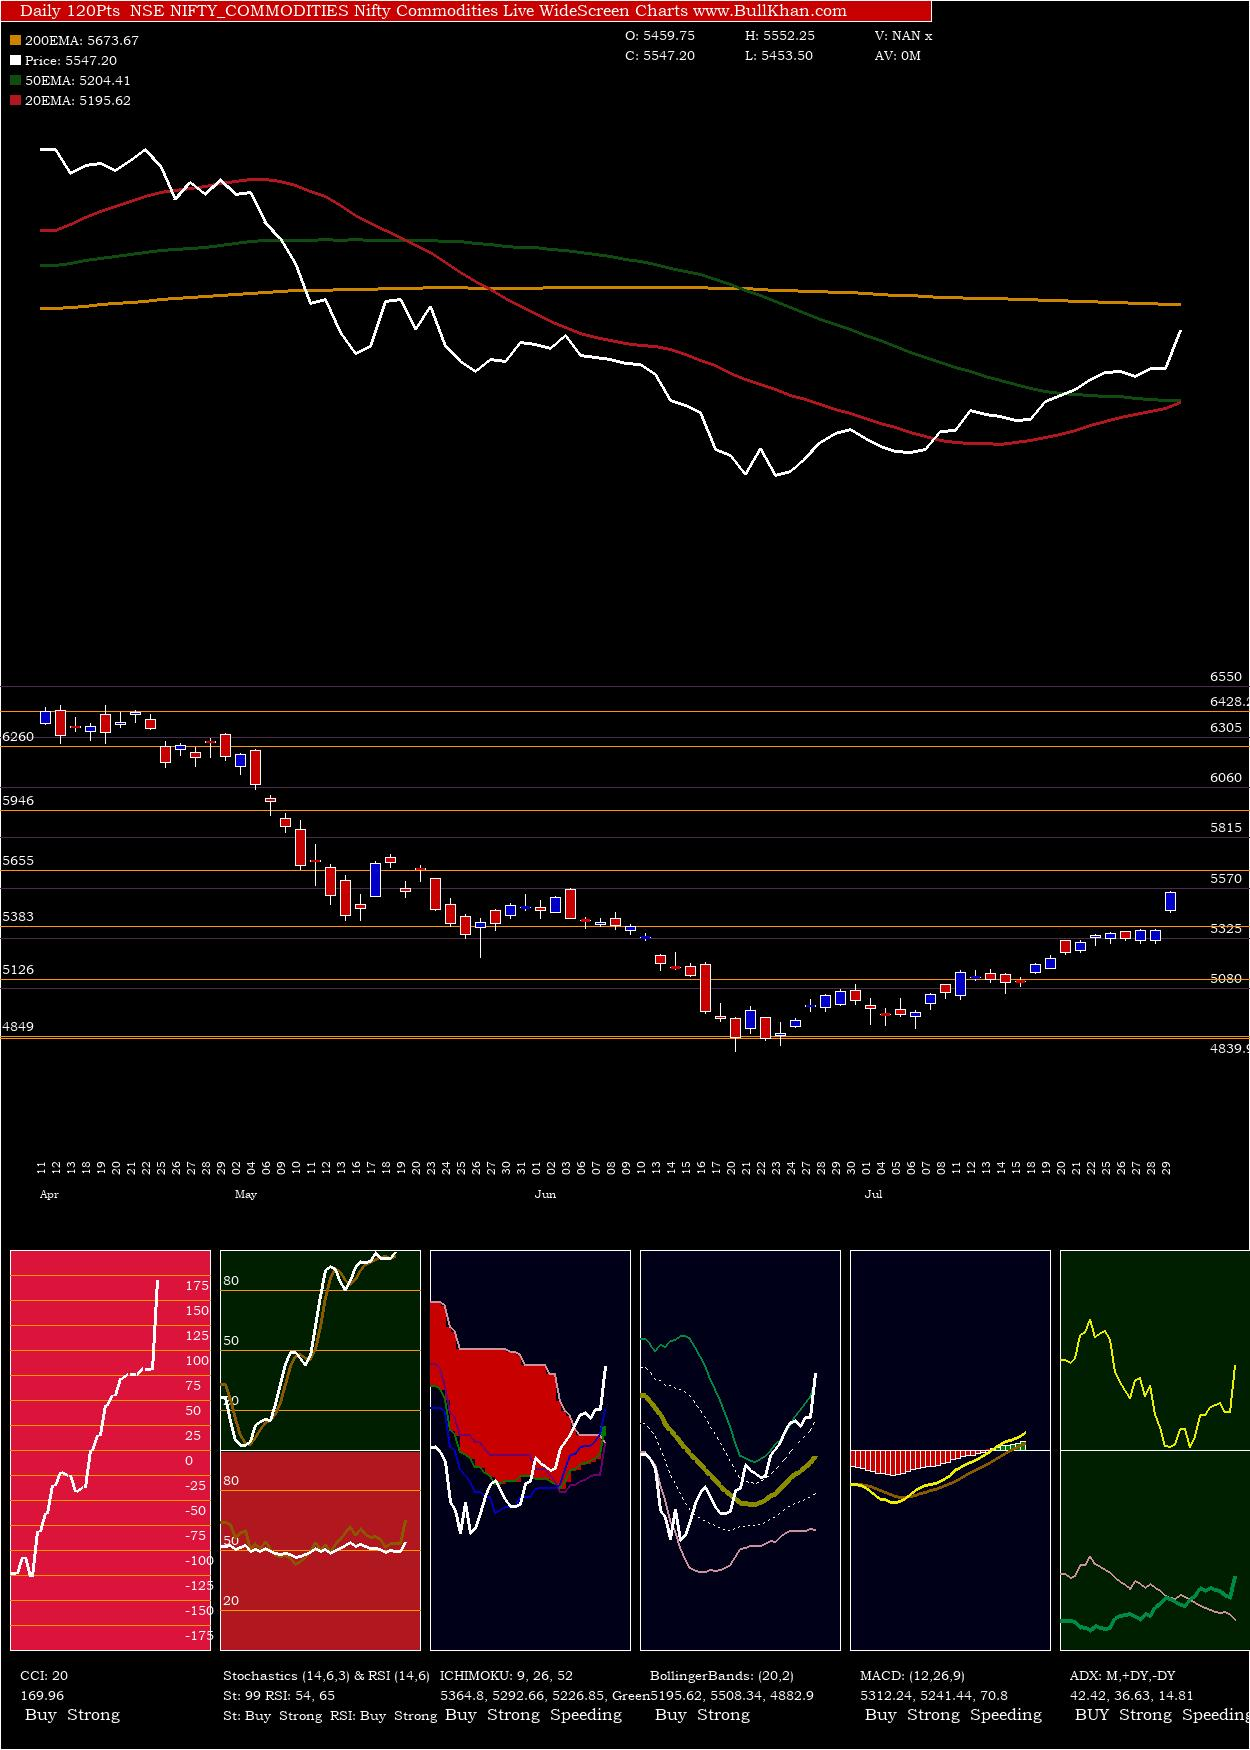 Nifty Commodities charts and indicators